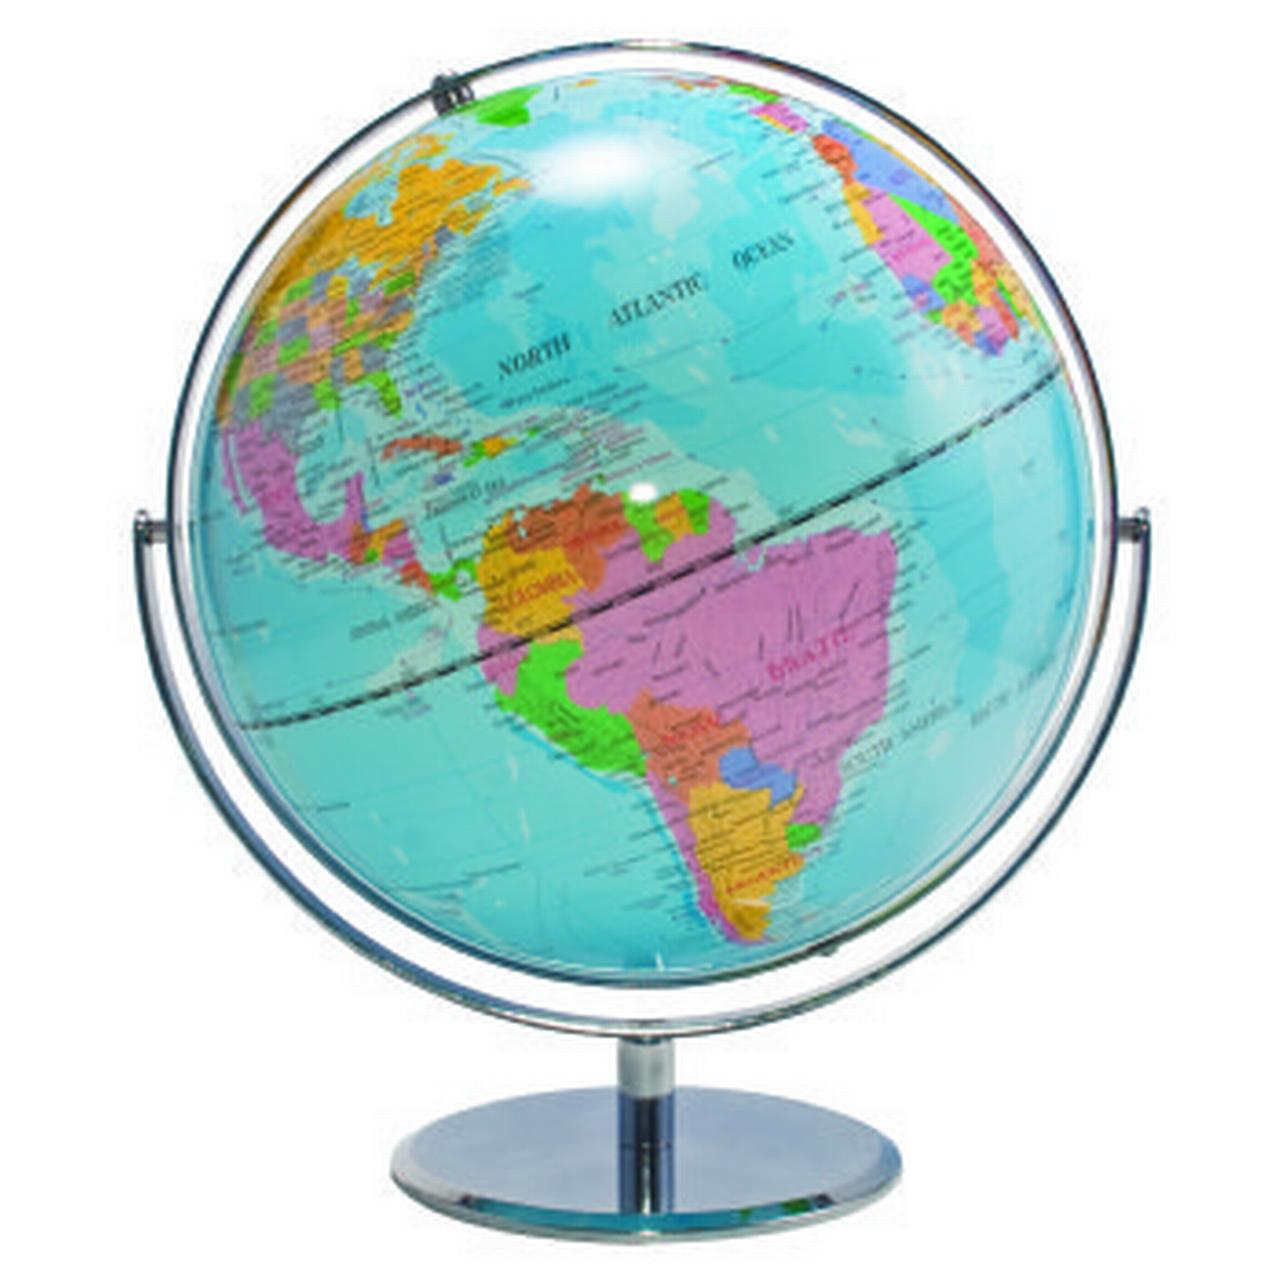 12-Inch Globe with Blue Oceans, Silver-Toned Metal Desktop Base,Full-Meridian